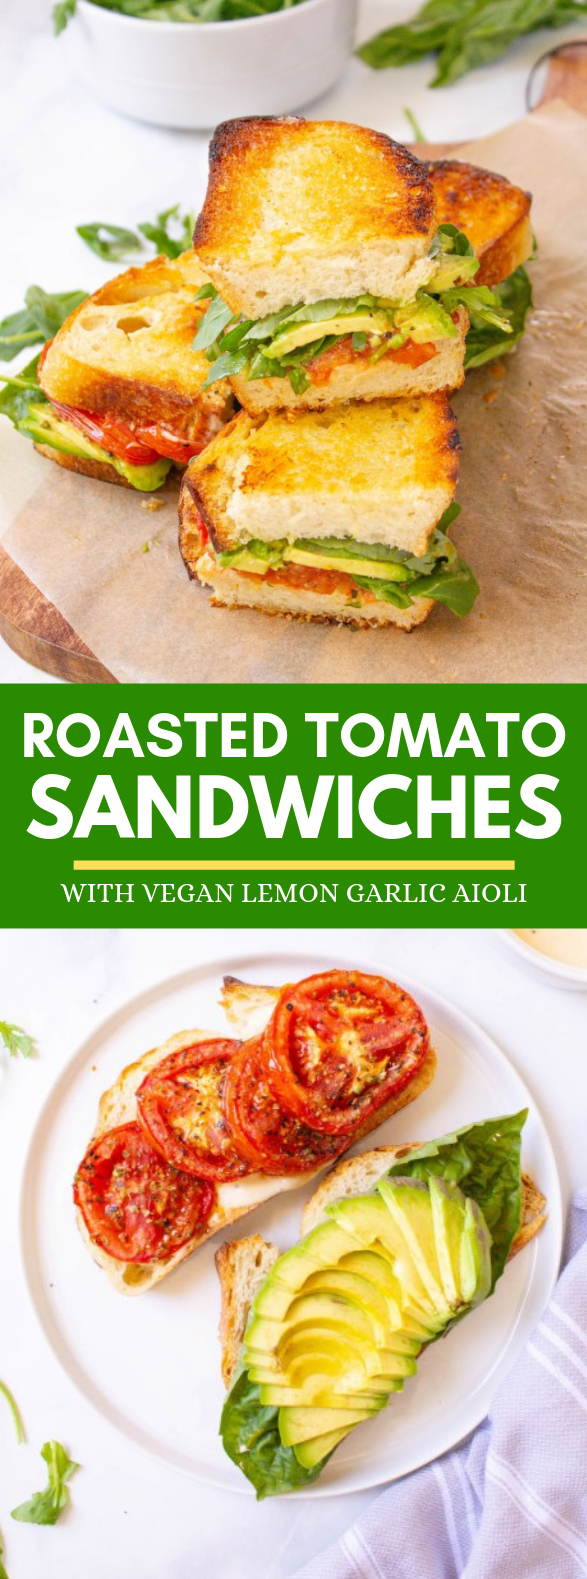 ROASTED TOMATO SANDWICHES WITH VEGAN LEMON GARLIC AIOLI #vegetarian #lunch